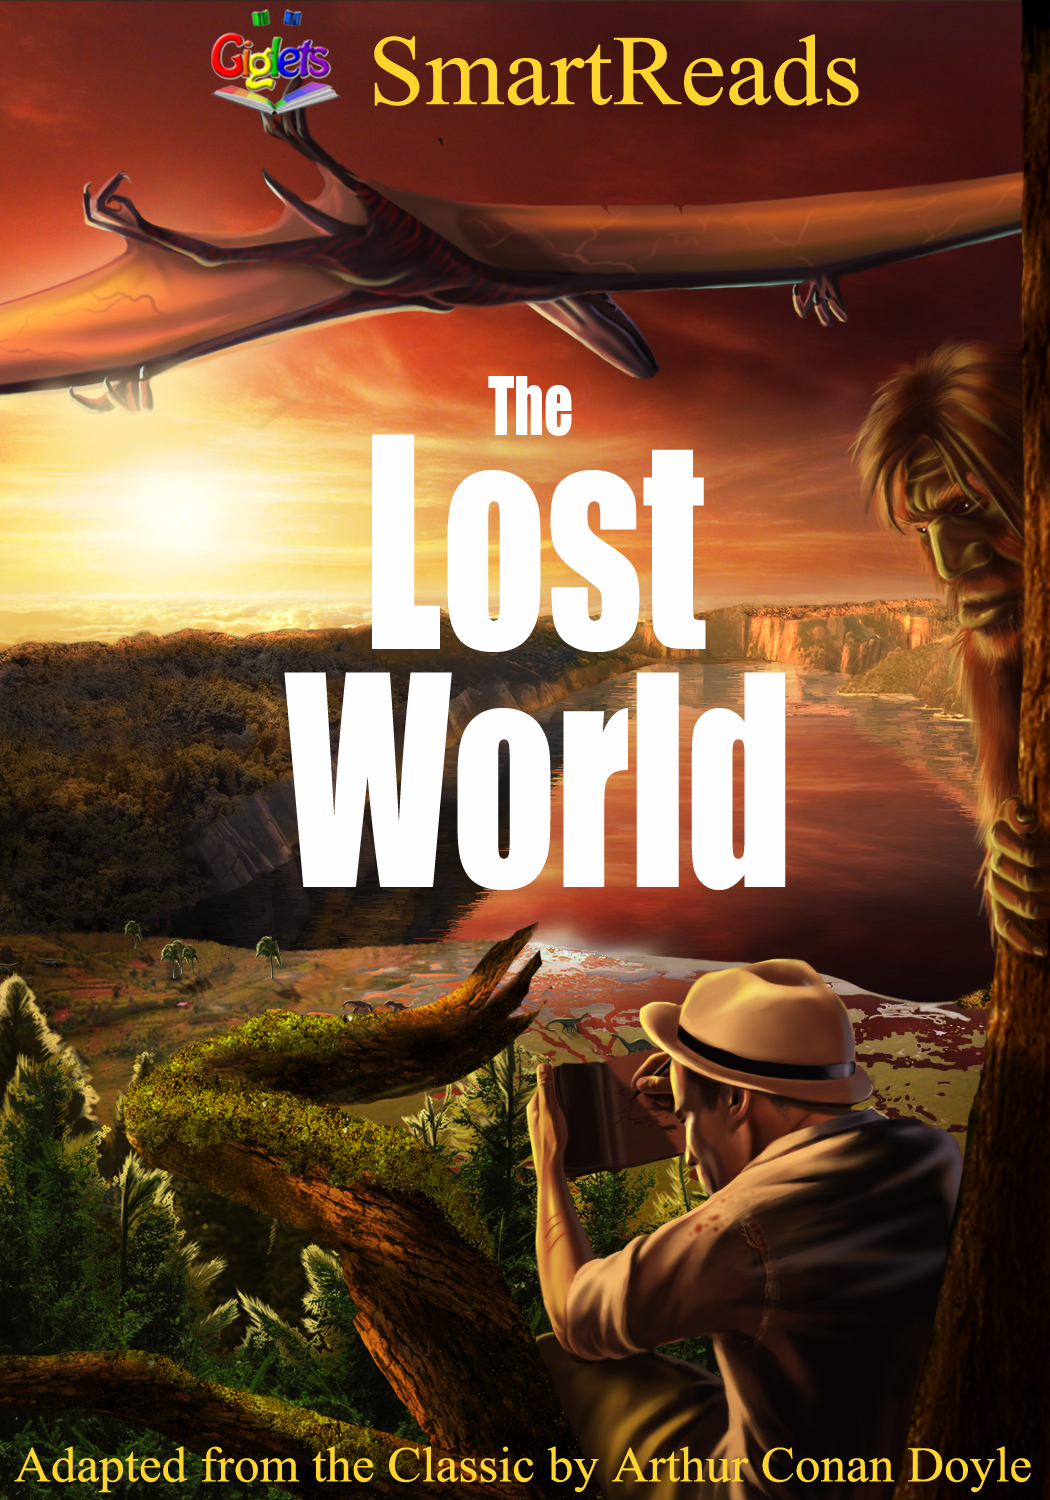 SmartReads The Lost World Adapted from the Classic by Arthur Conan Doyle By: Giglets